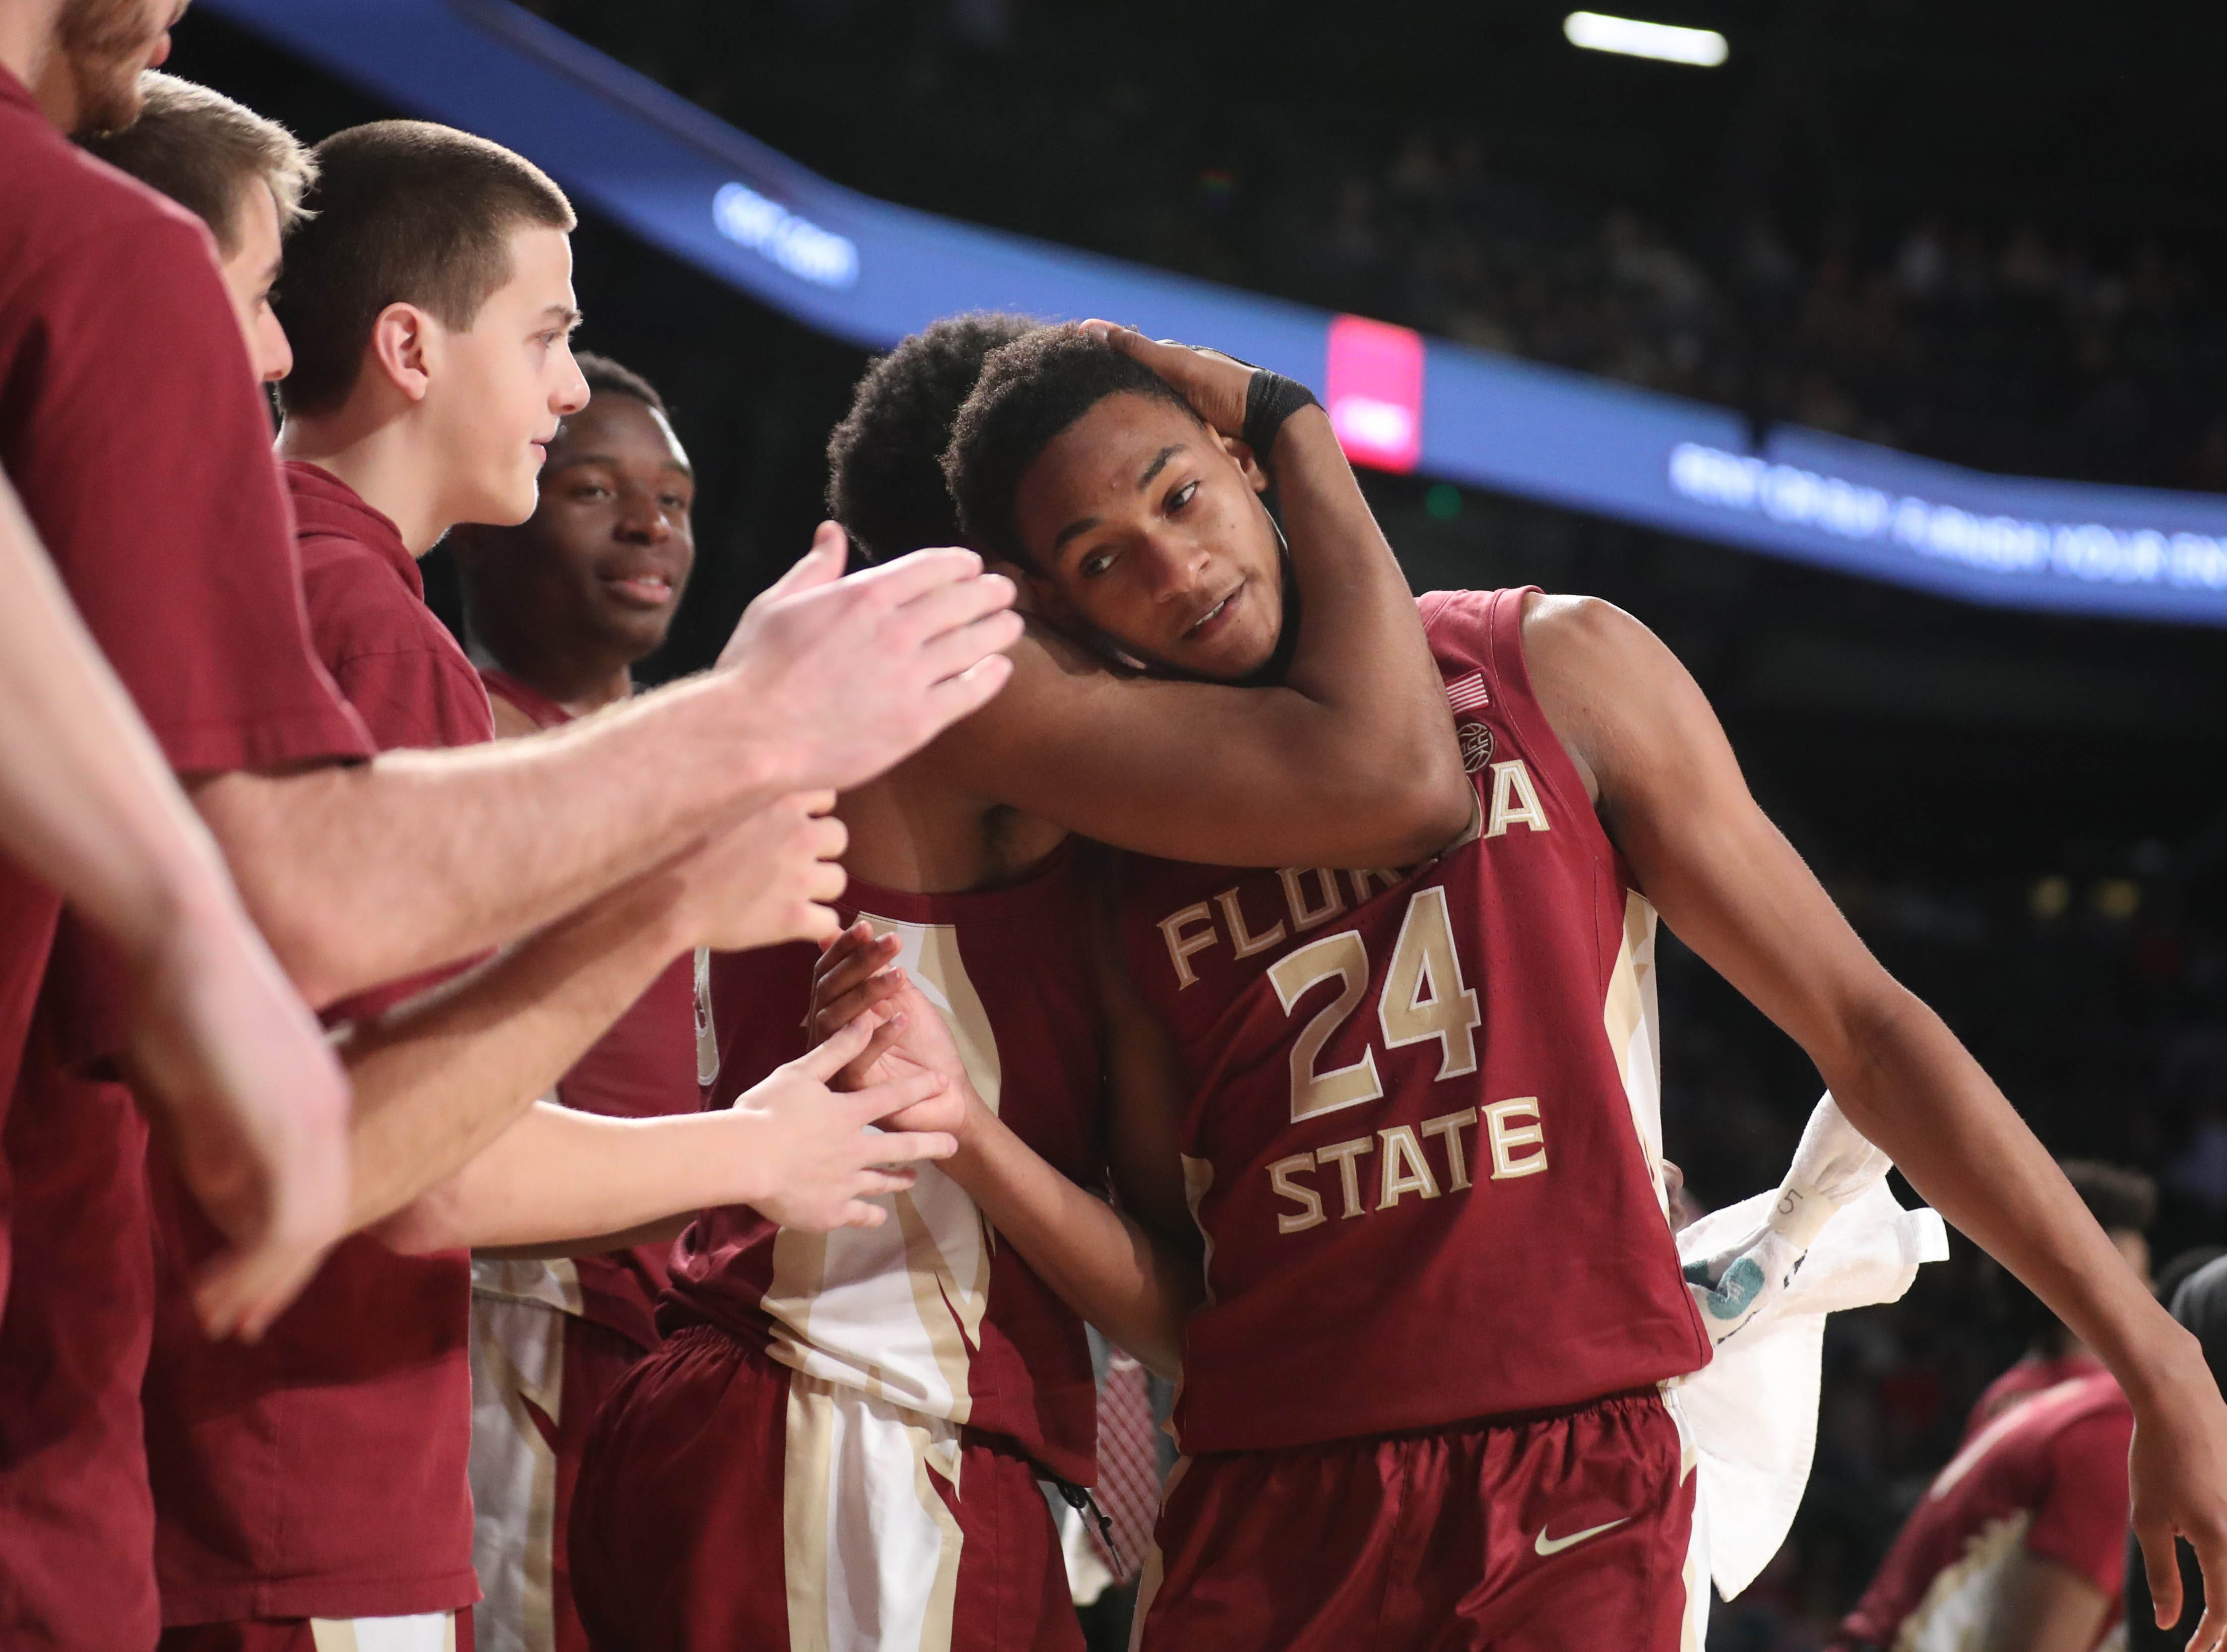 Feb 16, 2019; Atlanta, GA, USA; Florida State Seminoles guard Devin Vassell (24) gets a hug from guard PJ Savoy (5) after Vassell returned to the bench in the second half against the Georgia Tech Yellow Jackets at McCamish Pavilion. Mandatory Credit: Jason Getz-USA TODAY Sports